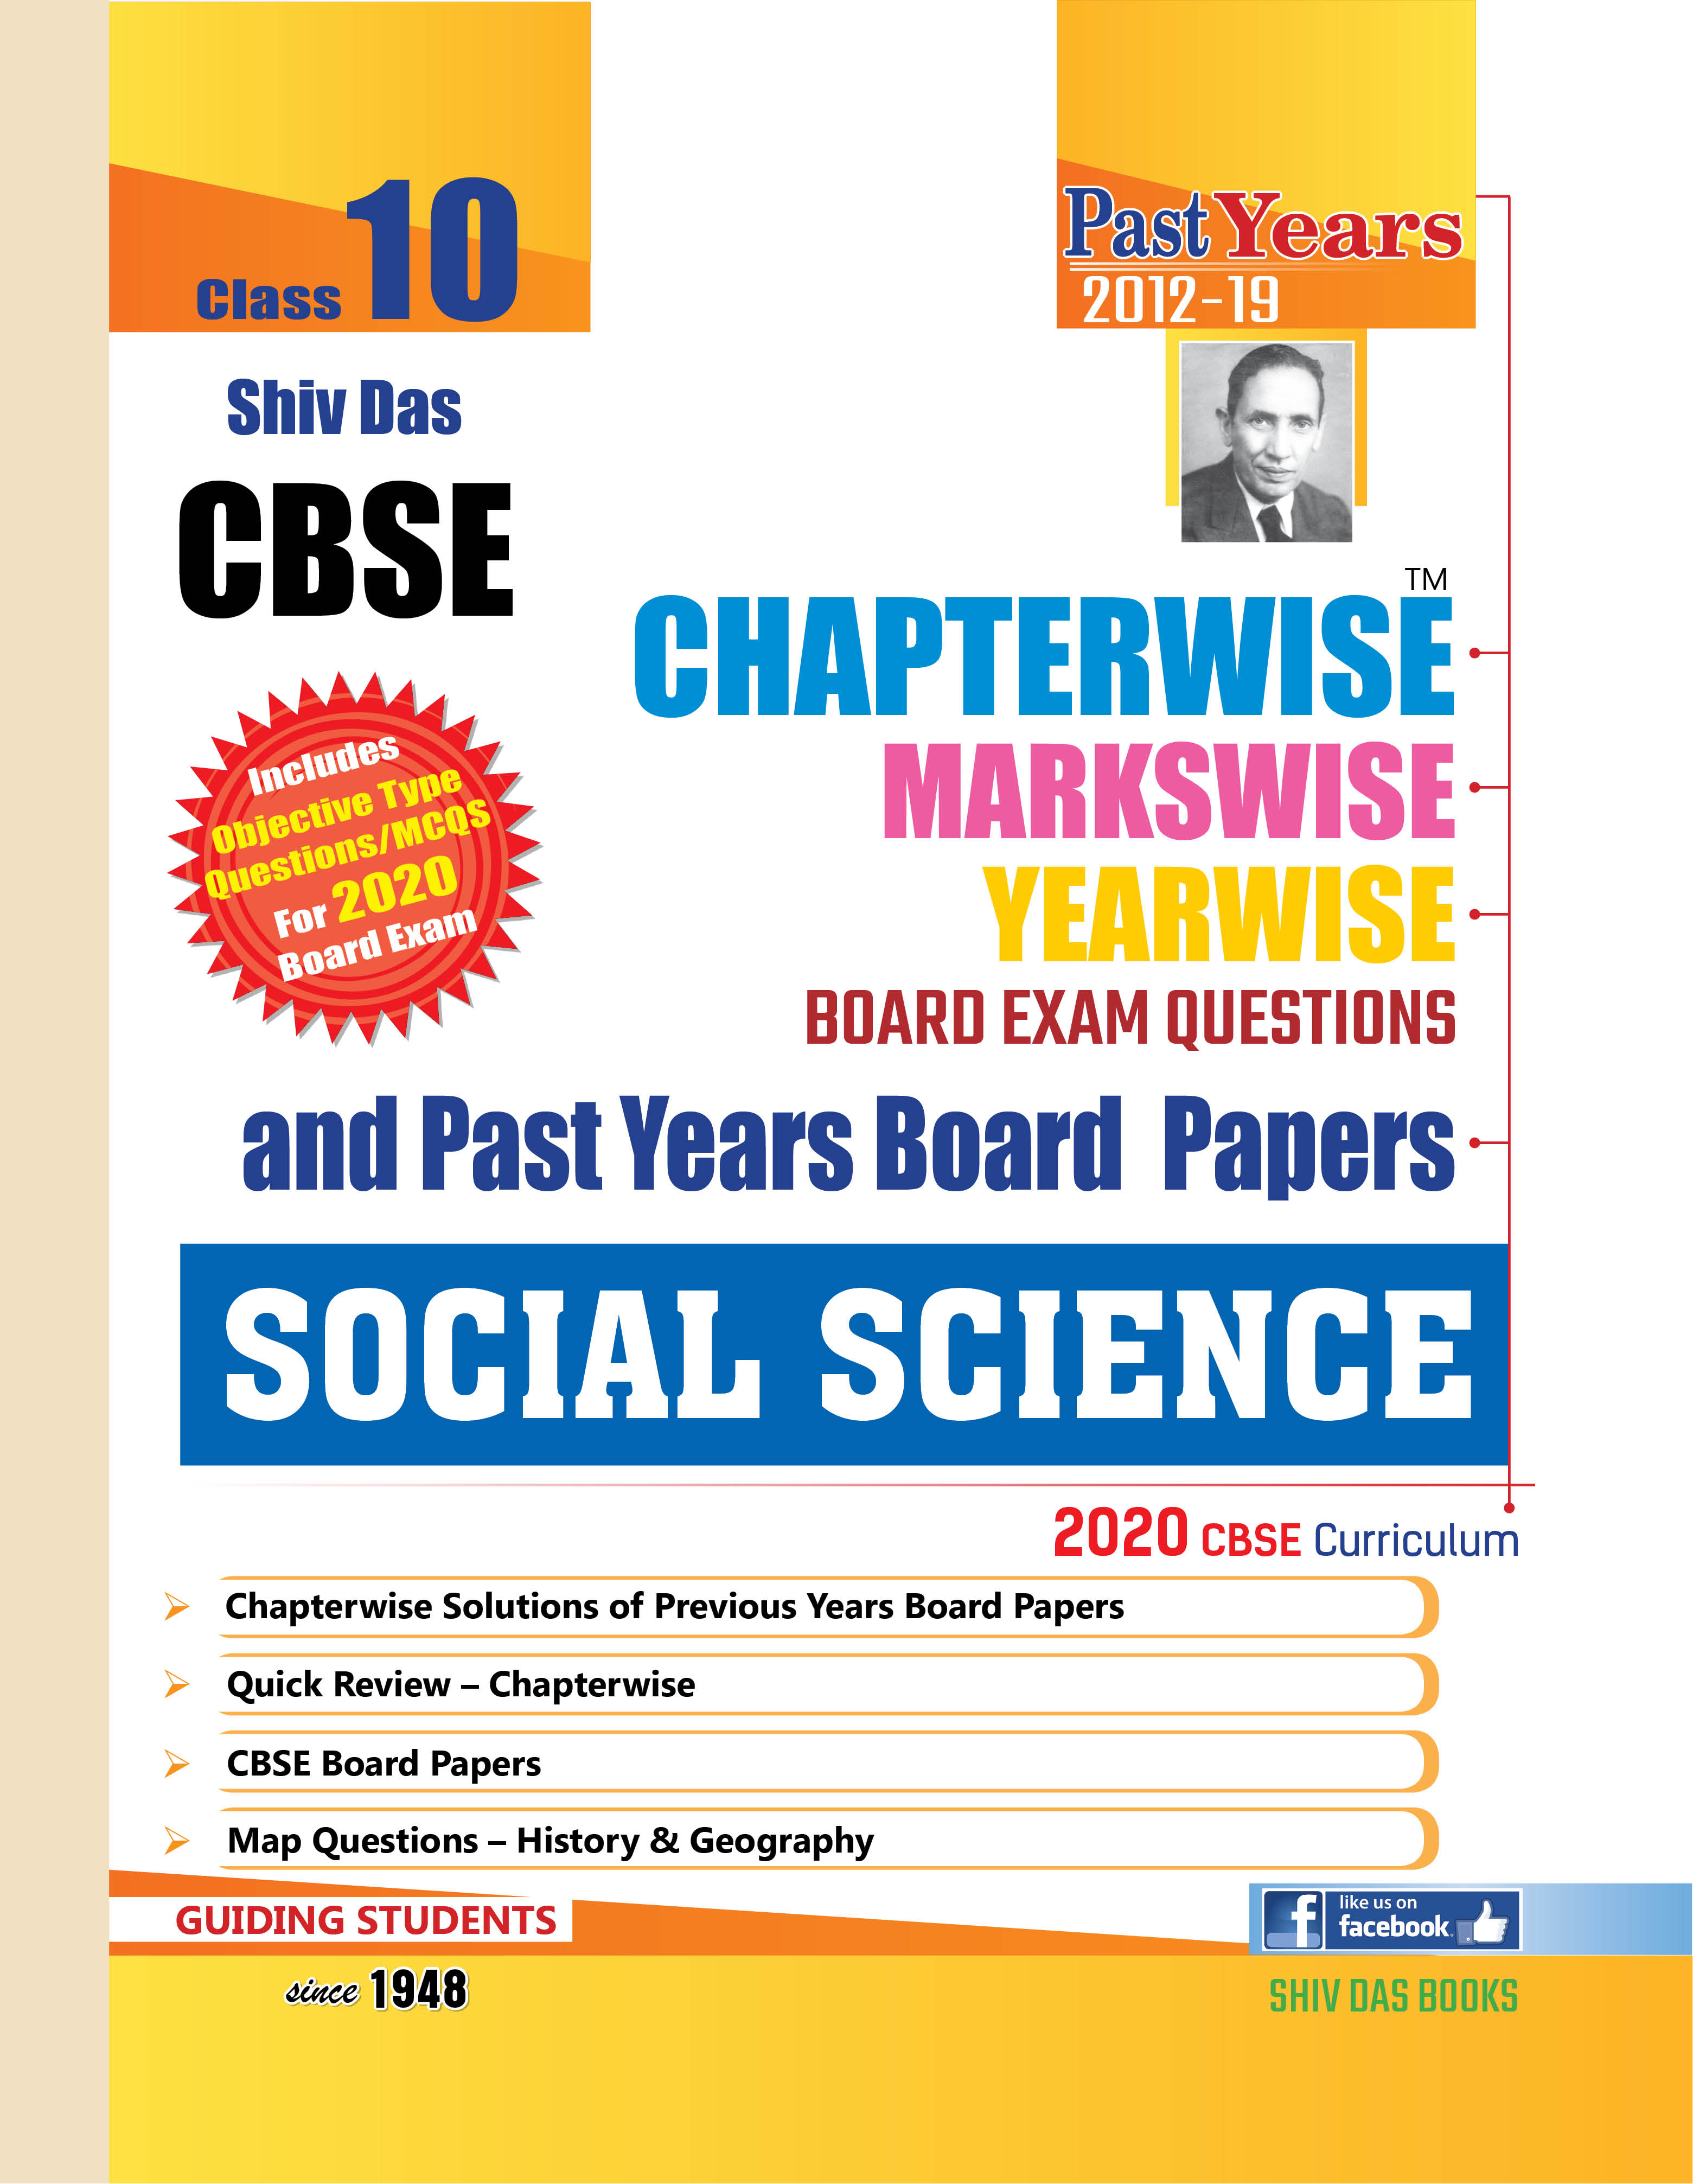 Shiv Das CBSE Chapterwise Markswise Yearwise Board Exam Questions Bank for Class 10 Social Science (2020 Board Exam Edition)